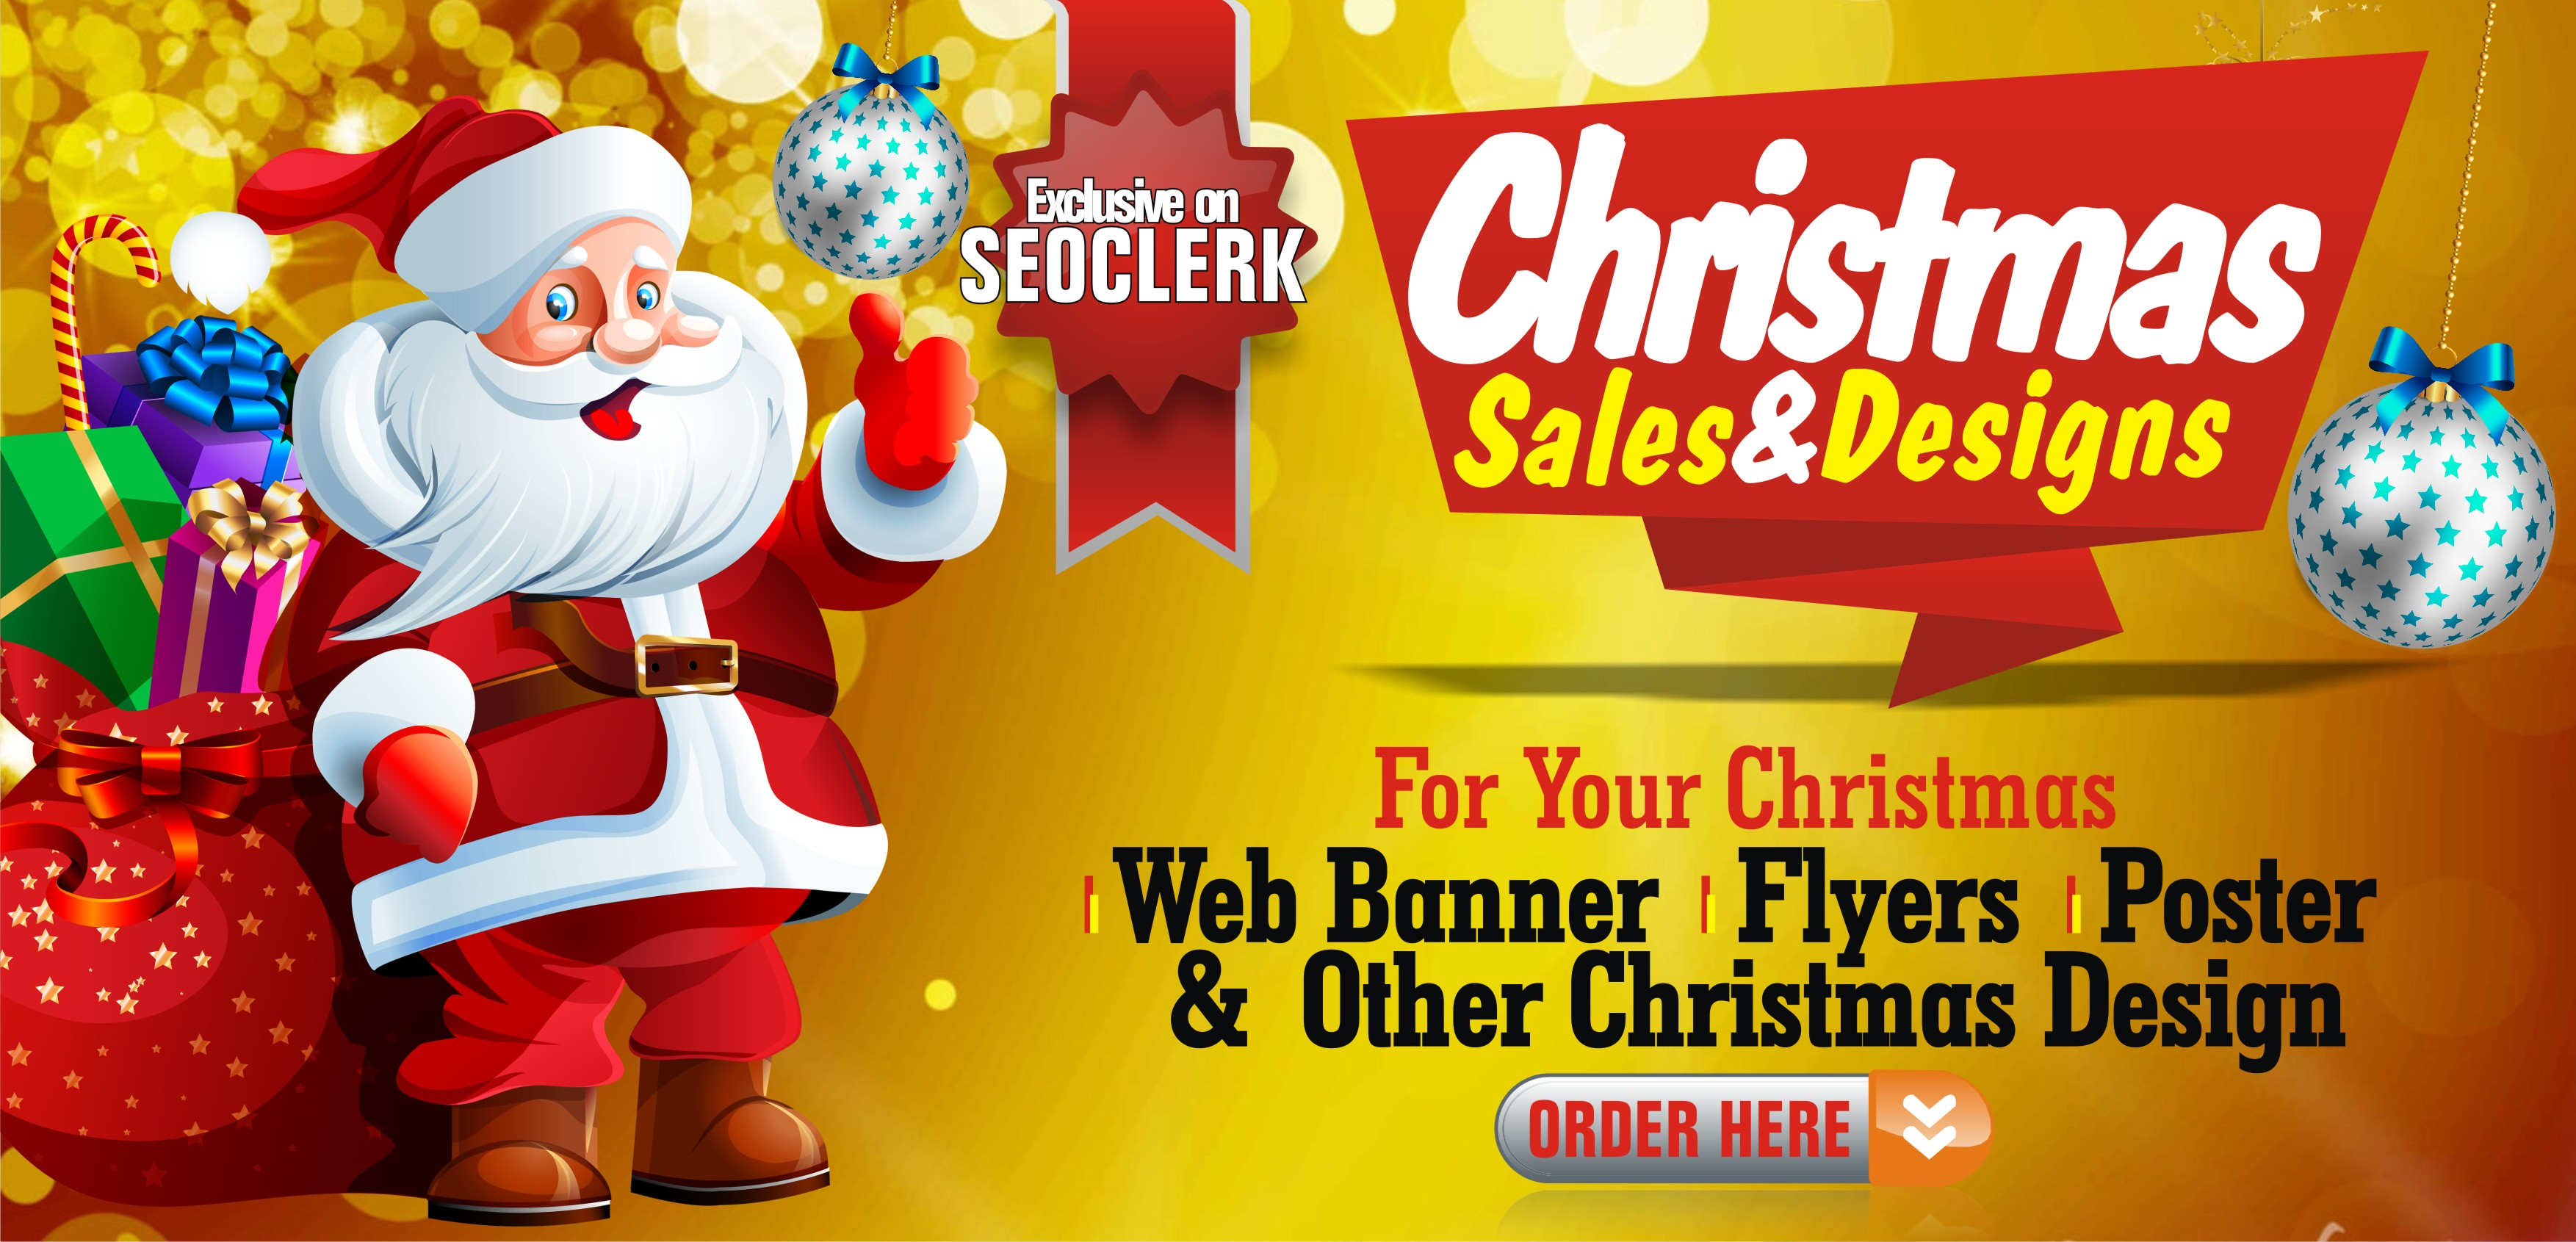 Professional Christmas design and sales